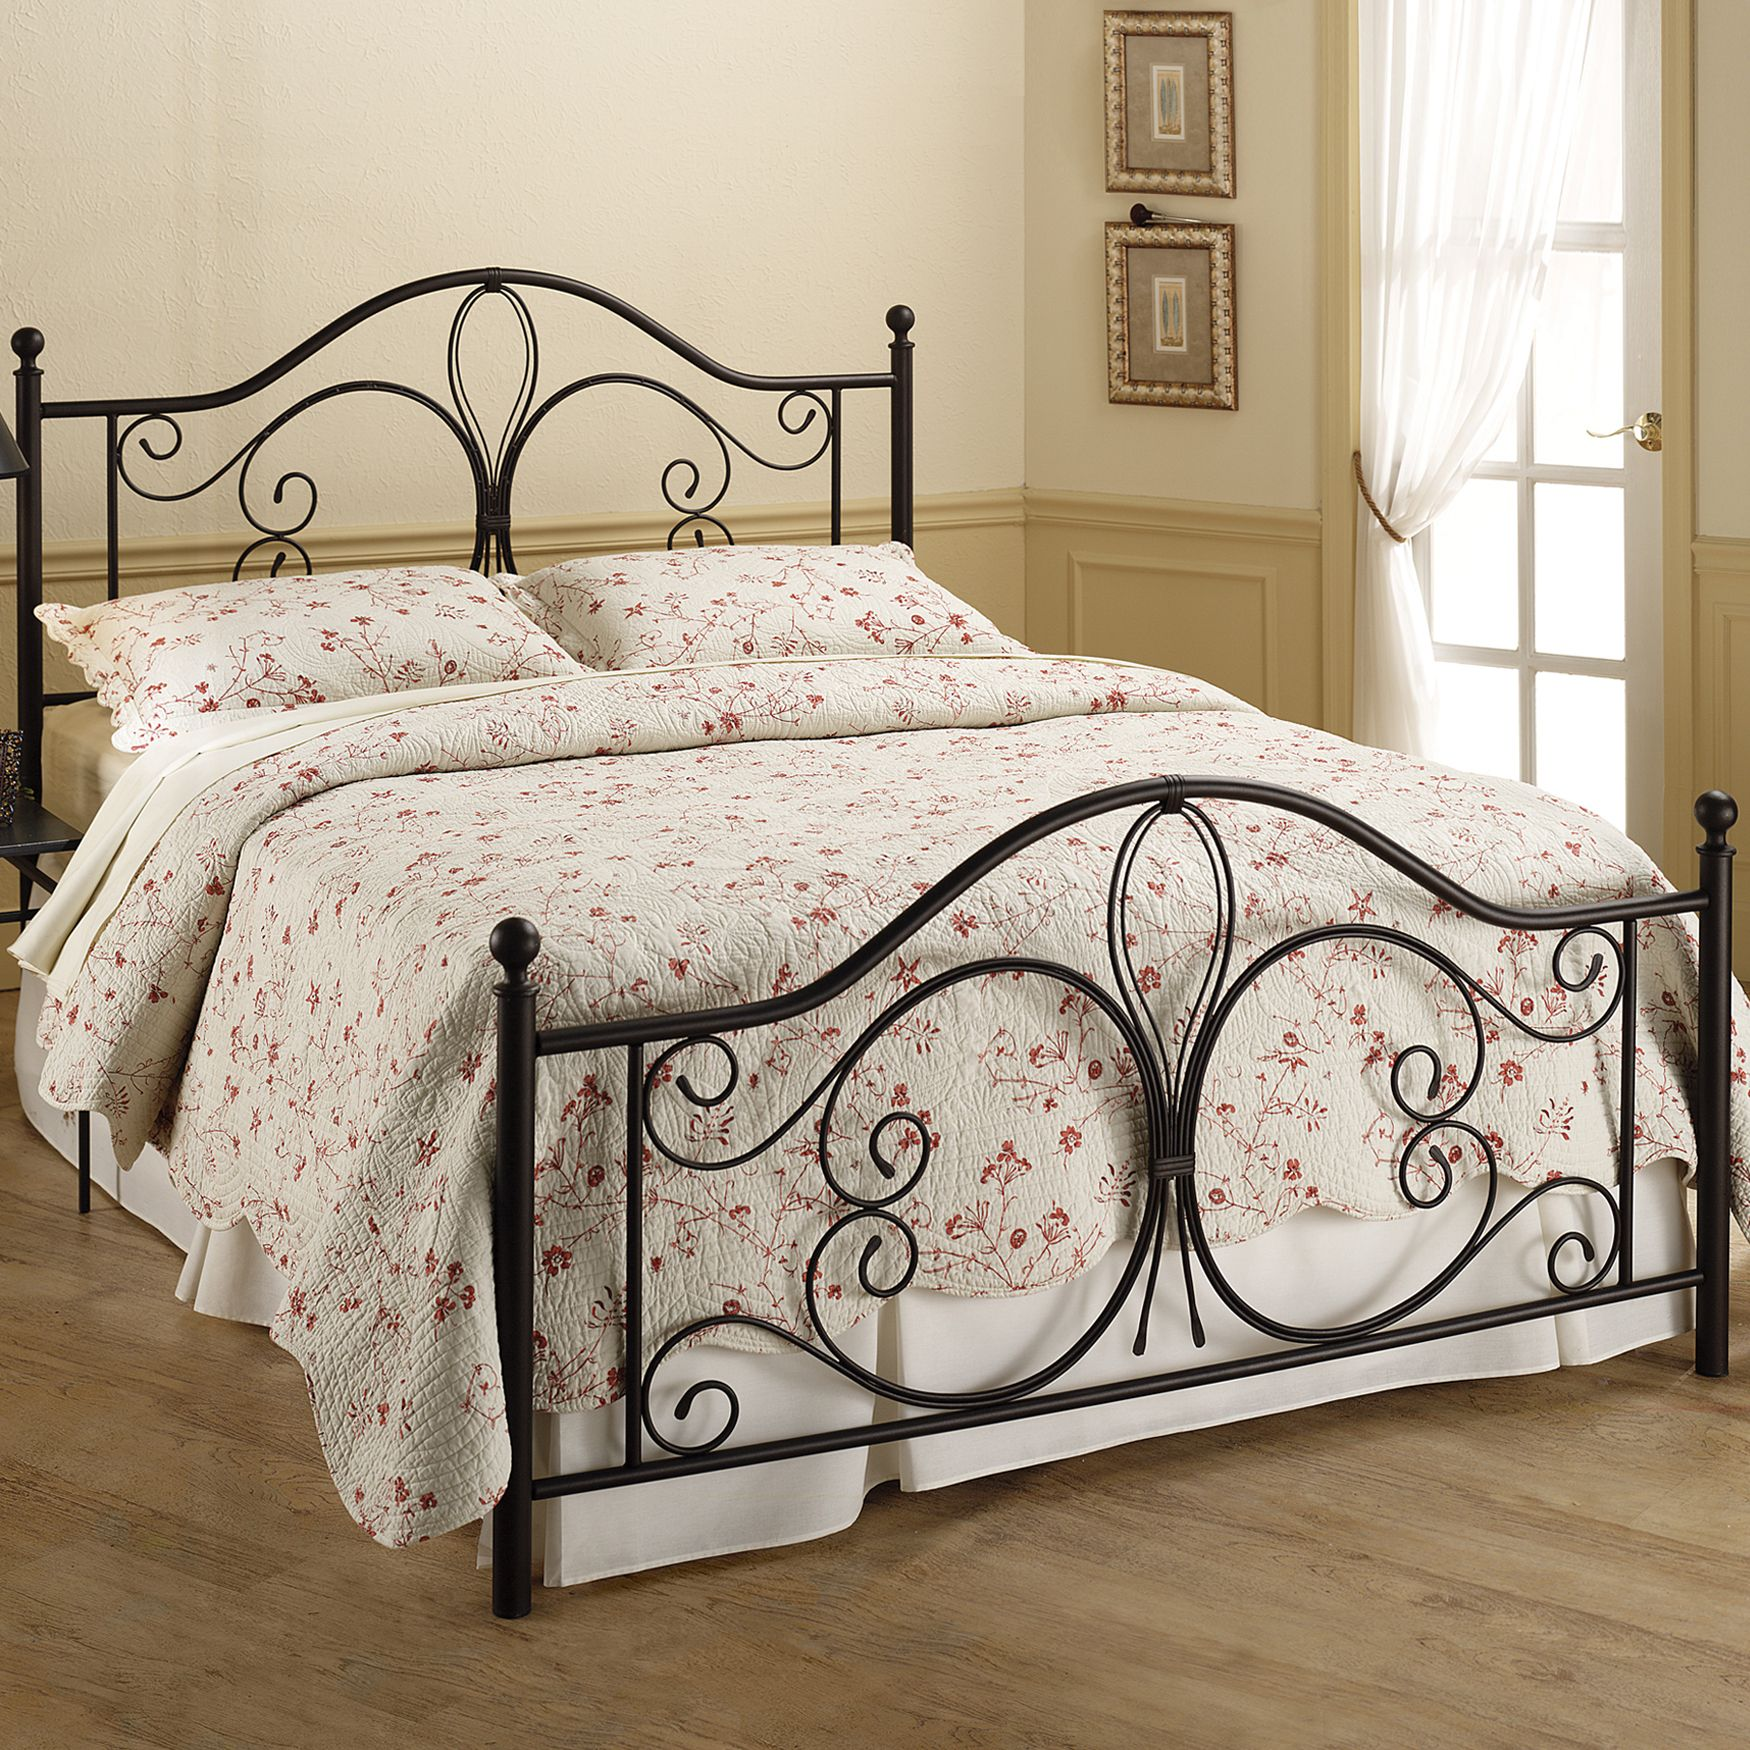 "Twin Bed Set with Bed Frame, 76""Lx40½""Wx49½""H, ANTIQUE BROWN"